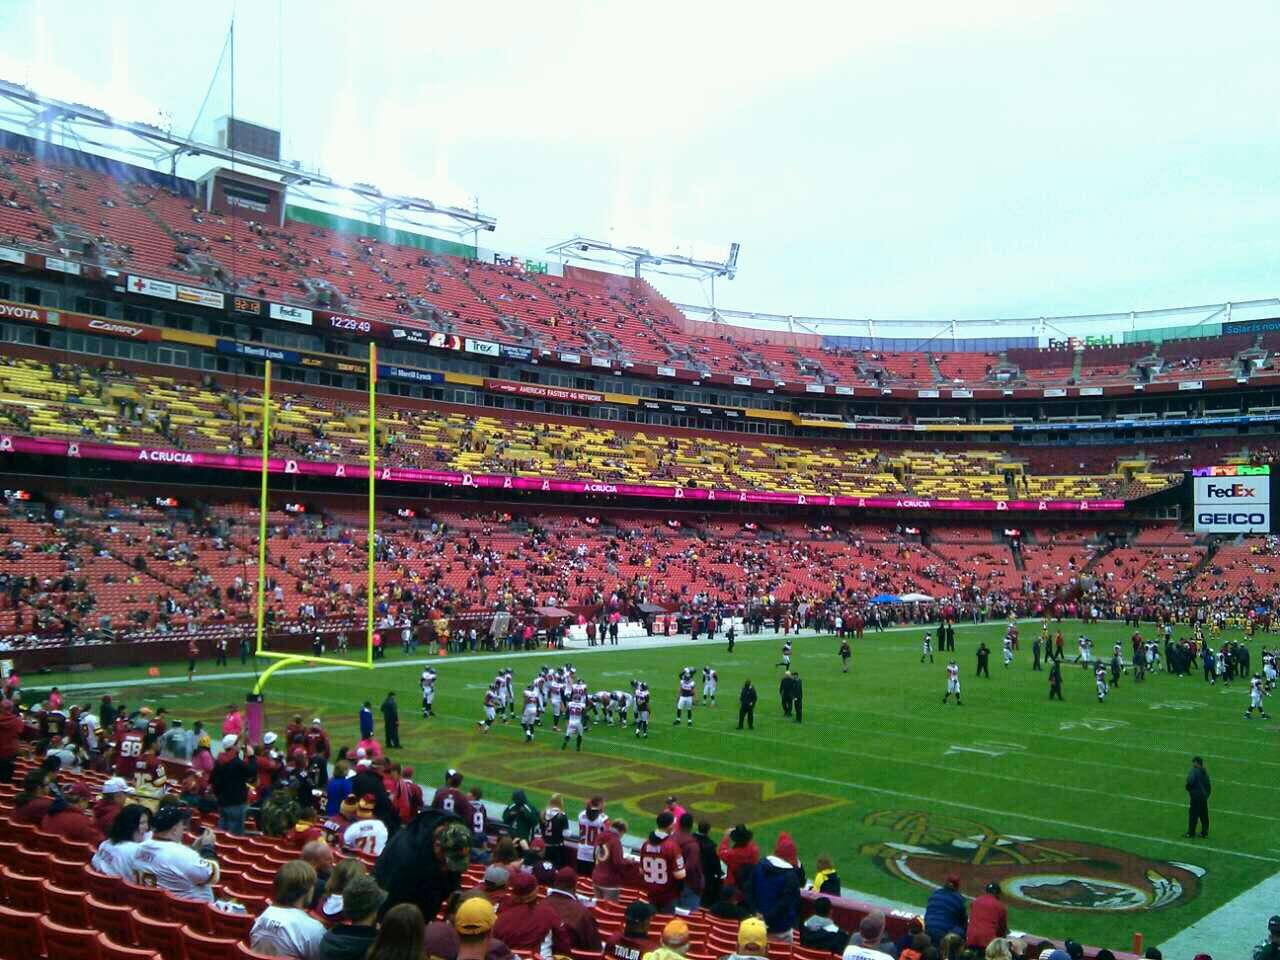 FedEx Field Section 129 Row 19 Seat 10